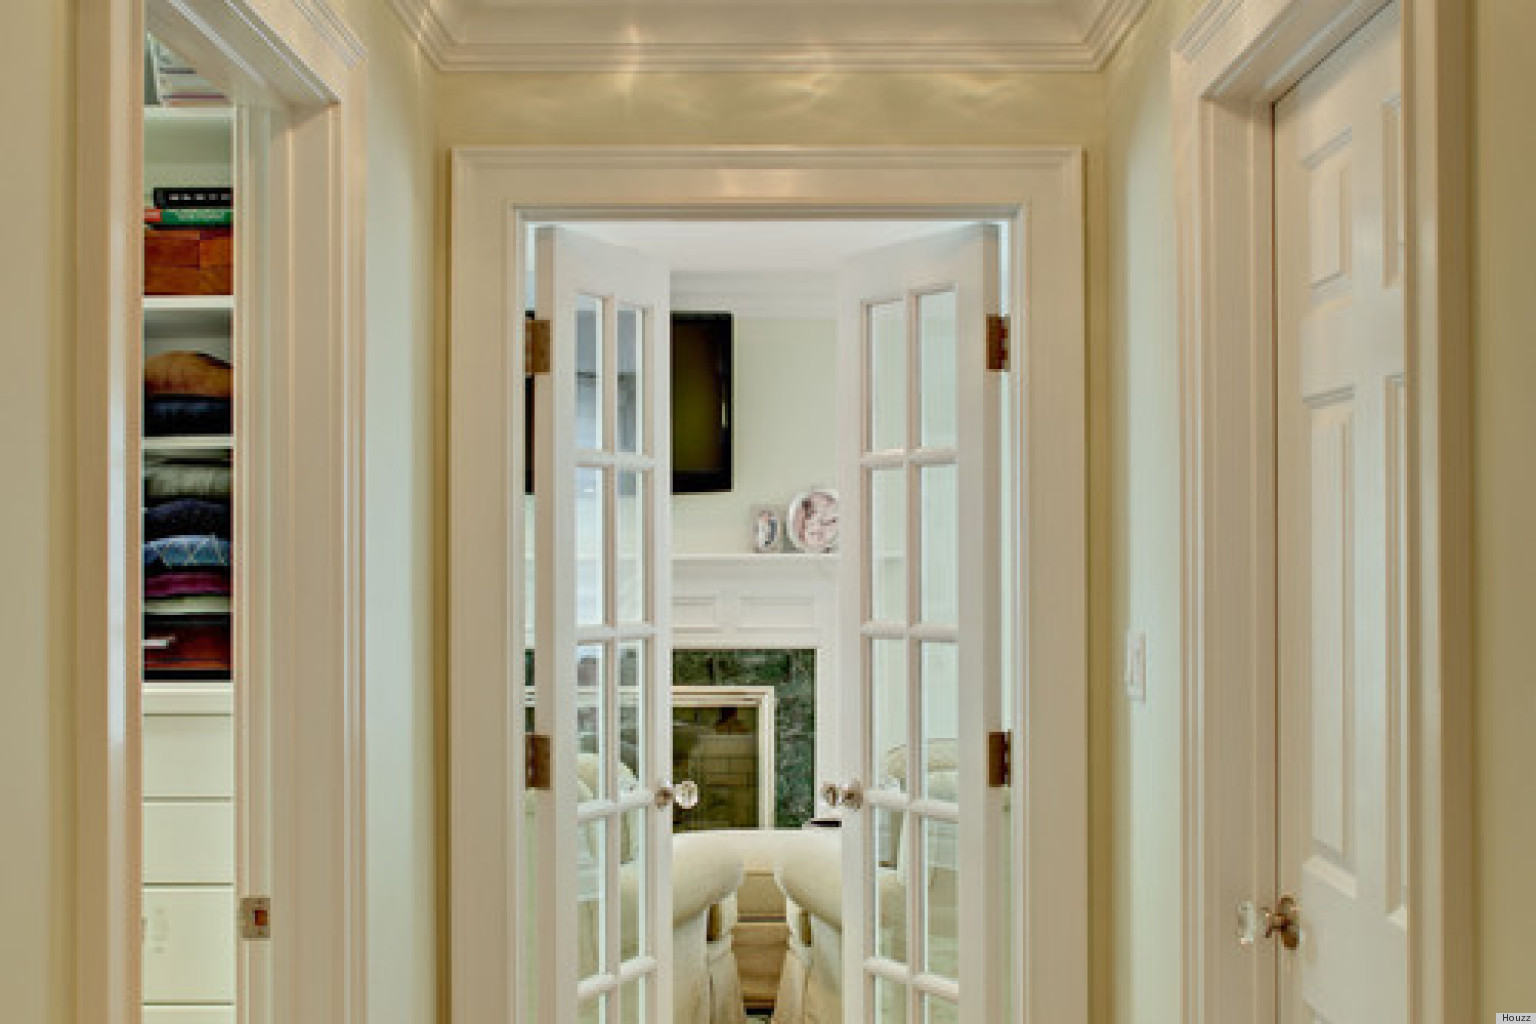 french doors interior design ideas photo - 1